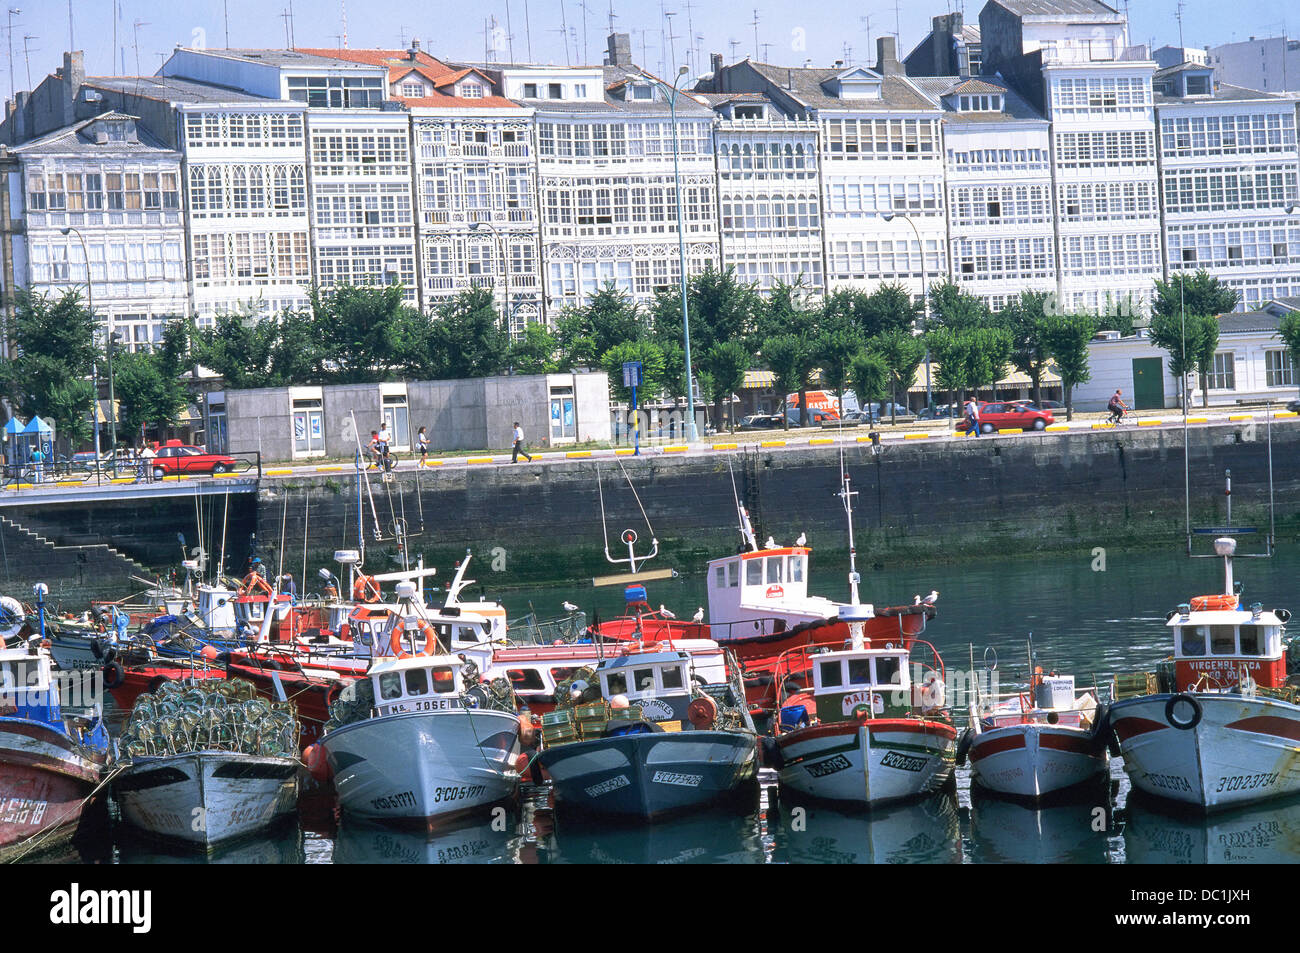 Avenida De La Marina La Coruña Spain Stock Photo Alamy